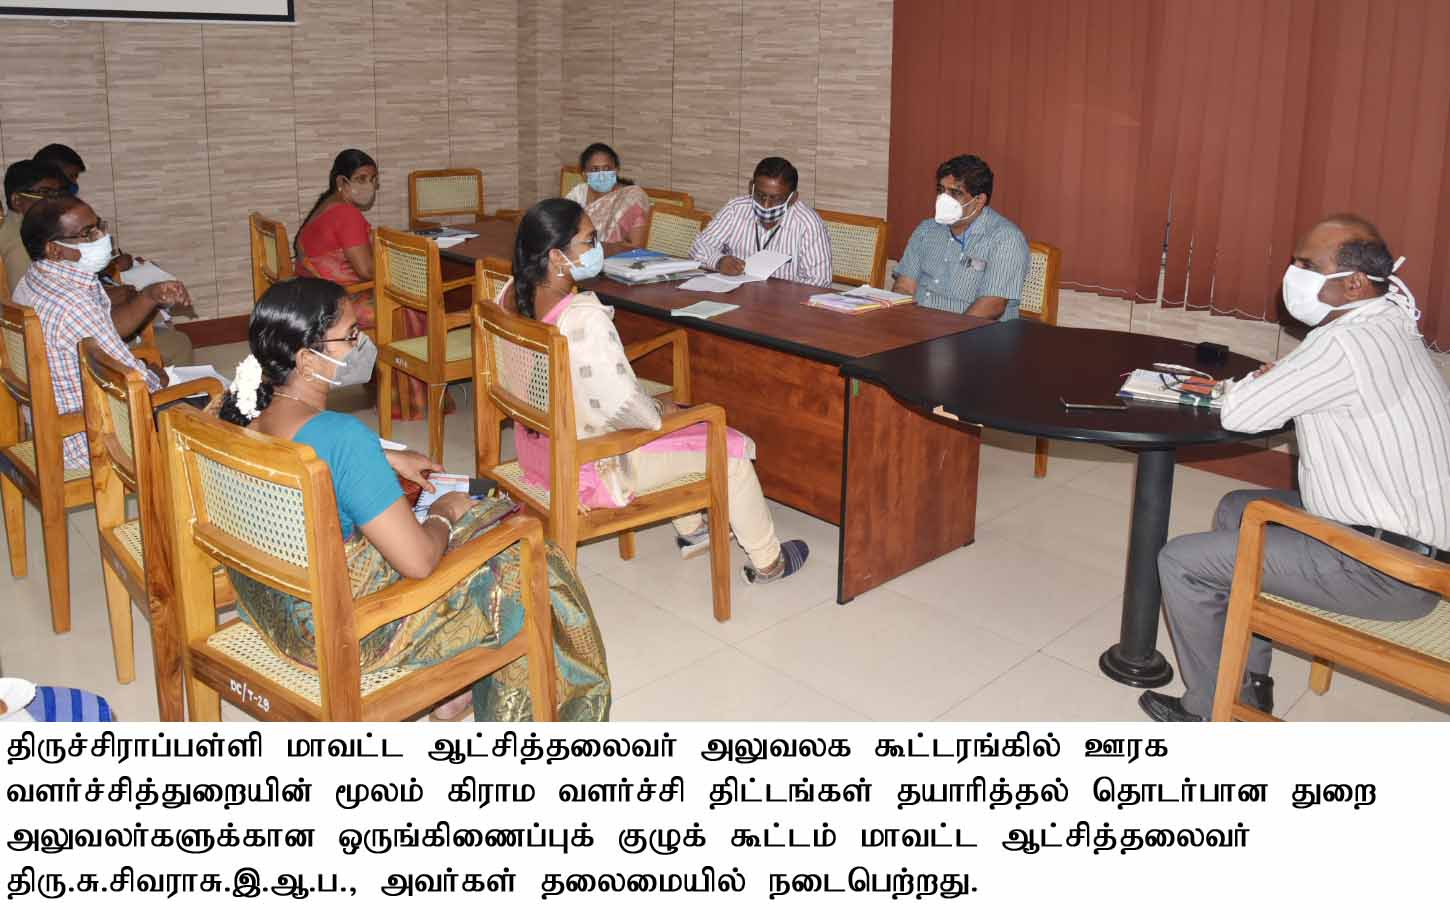 District Collector Conducted Coordination meeting for Village Development Programmes thro DRDA on 07.11.2020